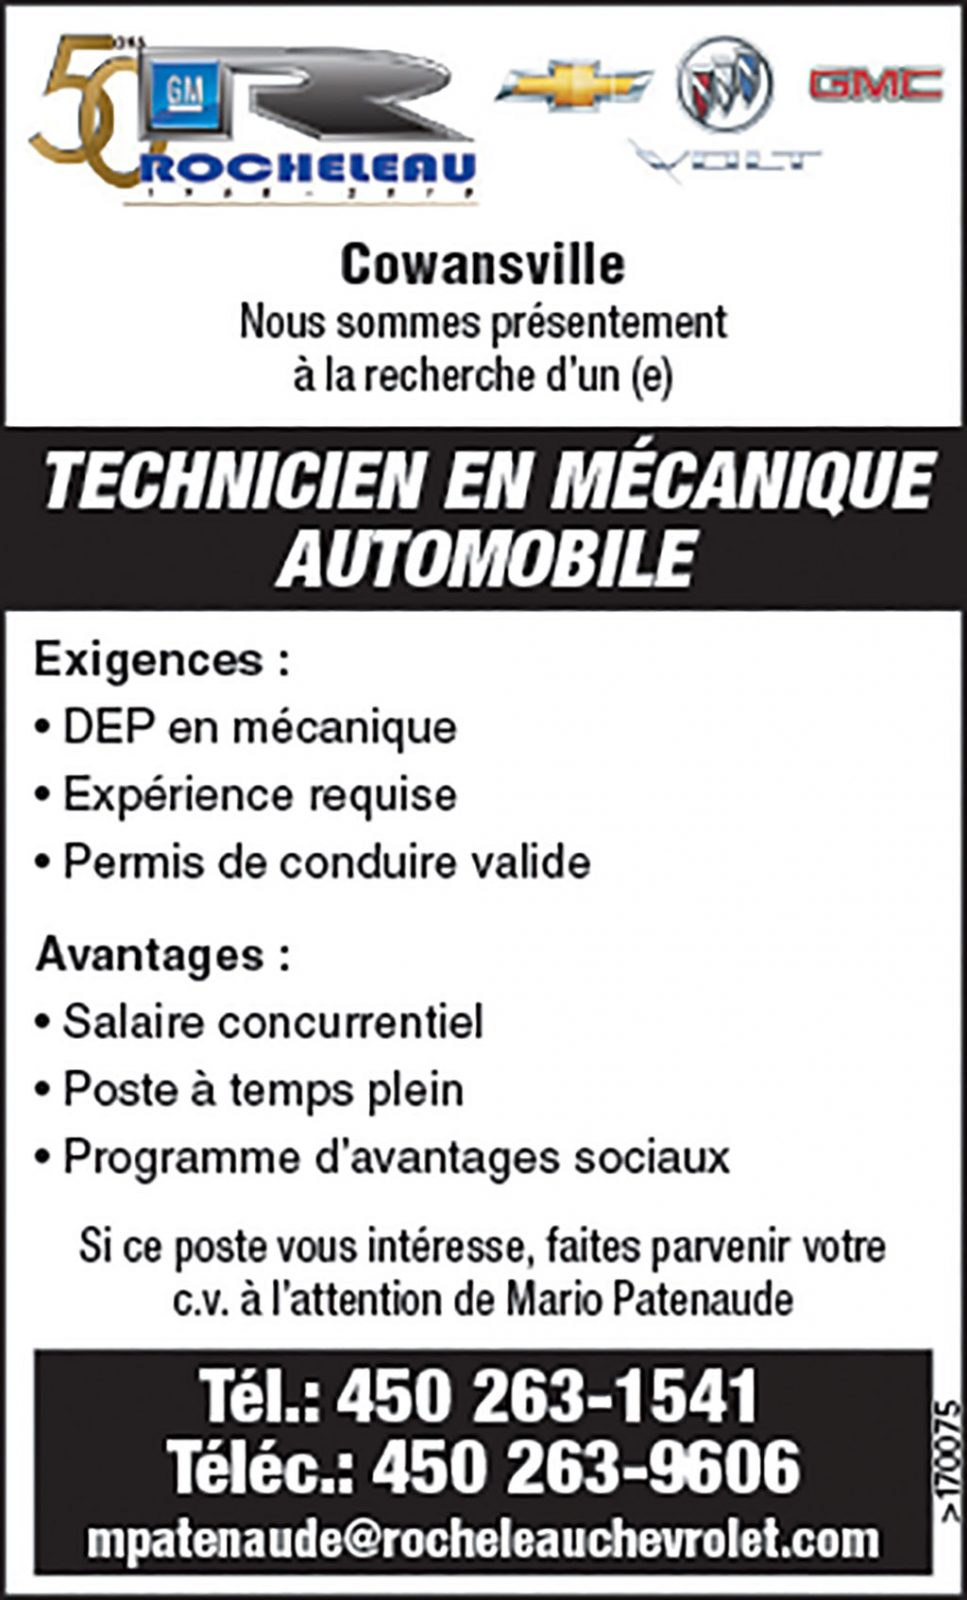 TECHNICIEN EN MÉCANIQUE AUTOMOBILE